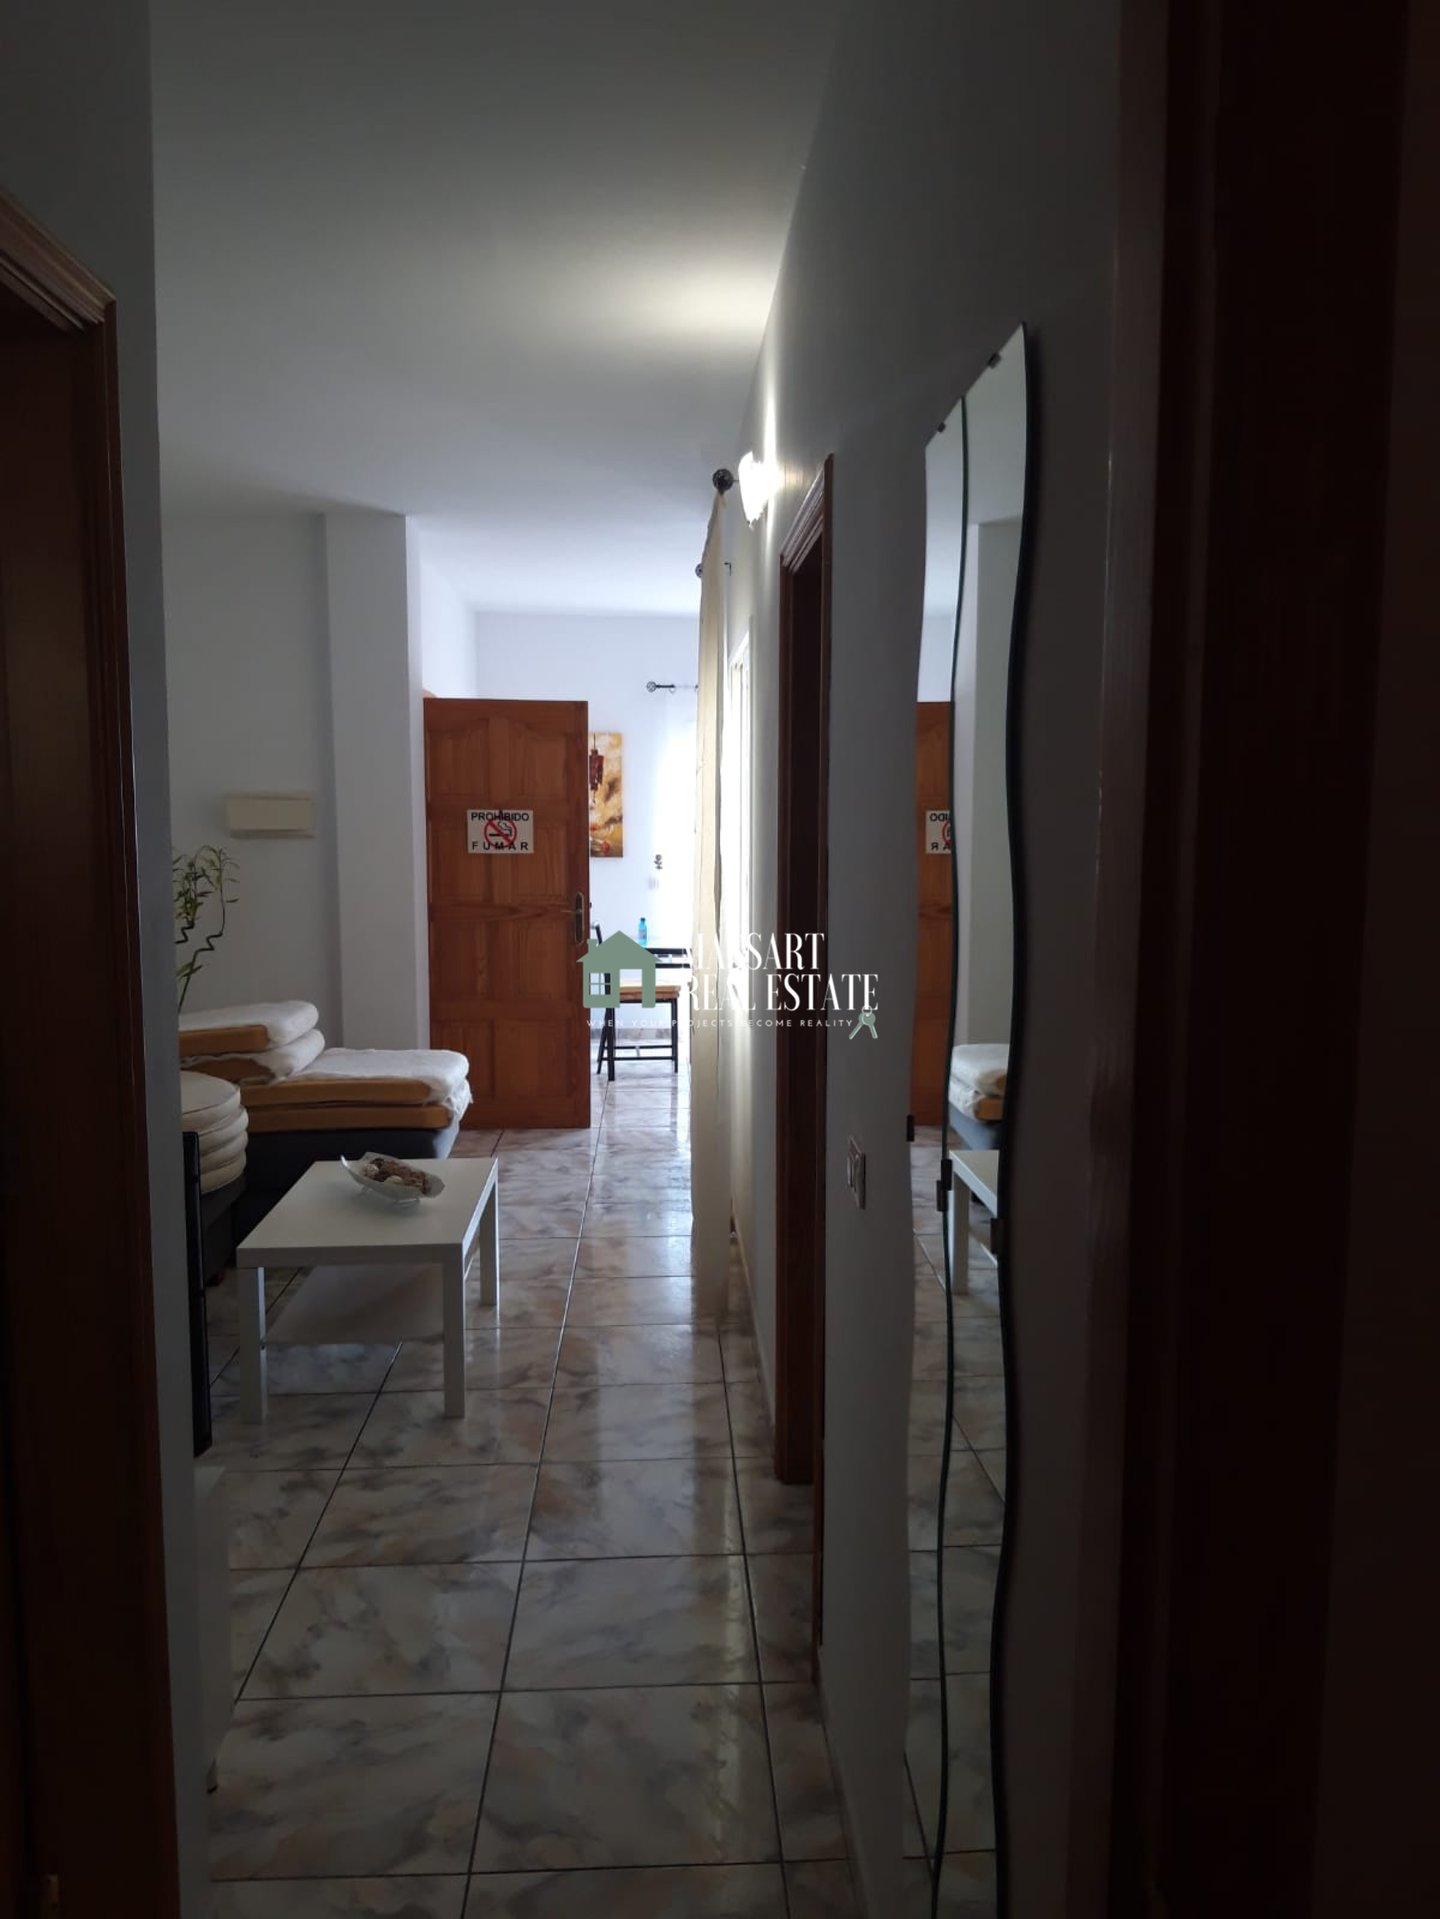 For rent in Armeñime, furnished apartment characterized by offering panoramic and privileged views of the sea and the island of La Gomera.